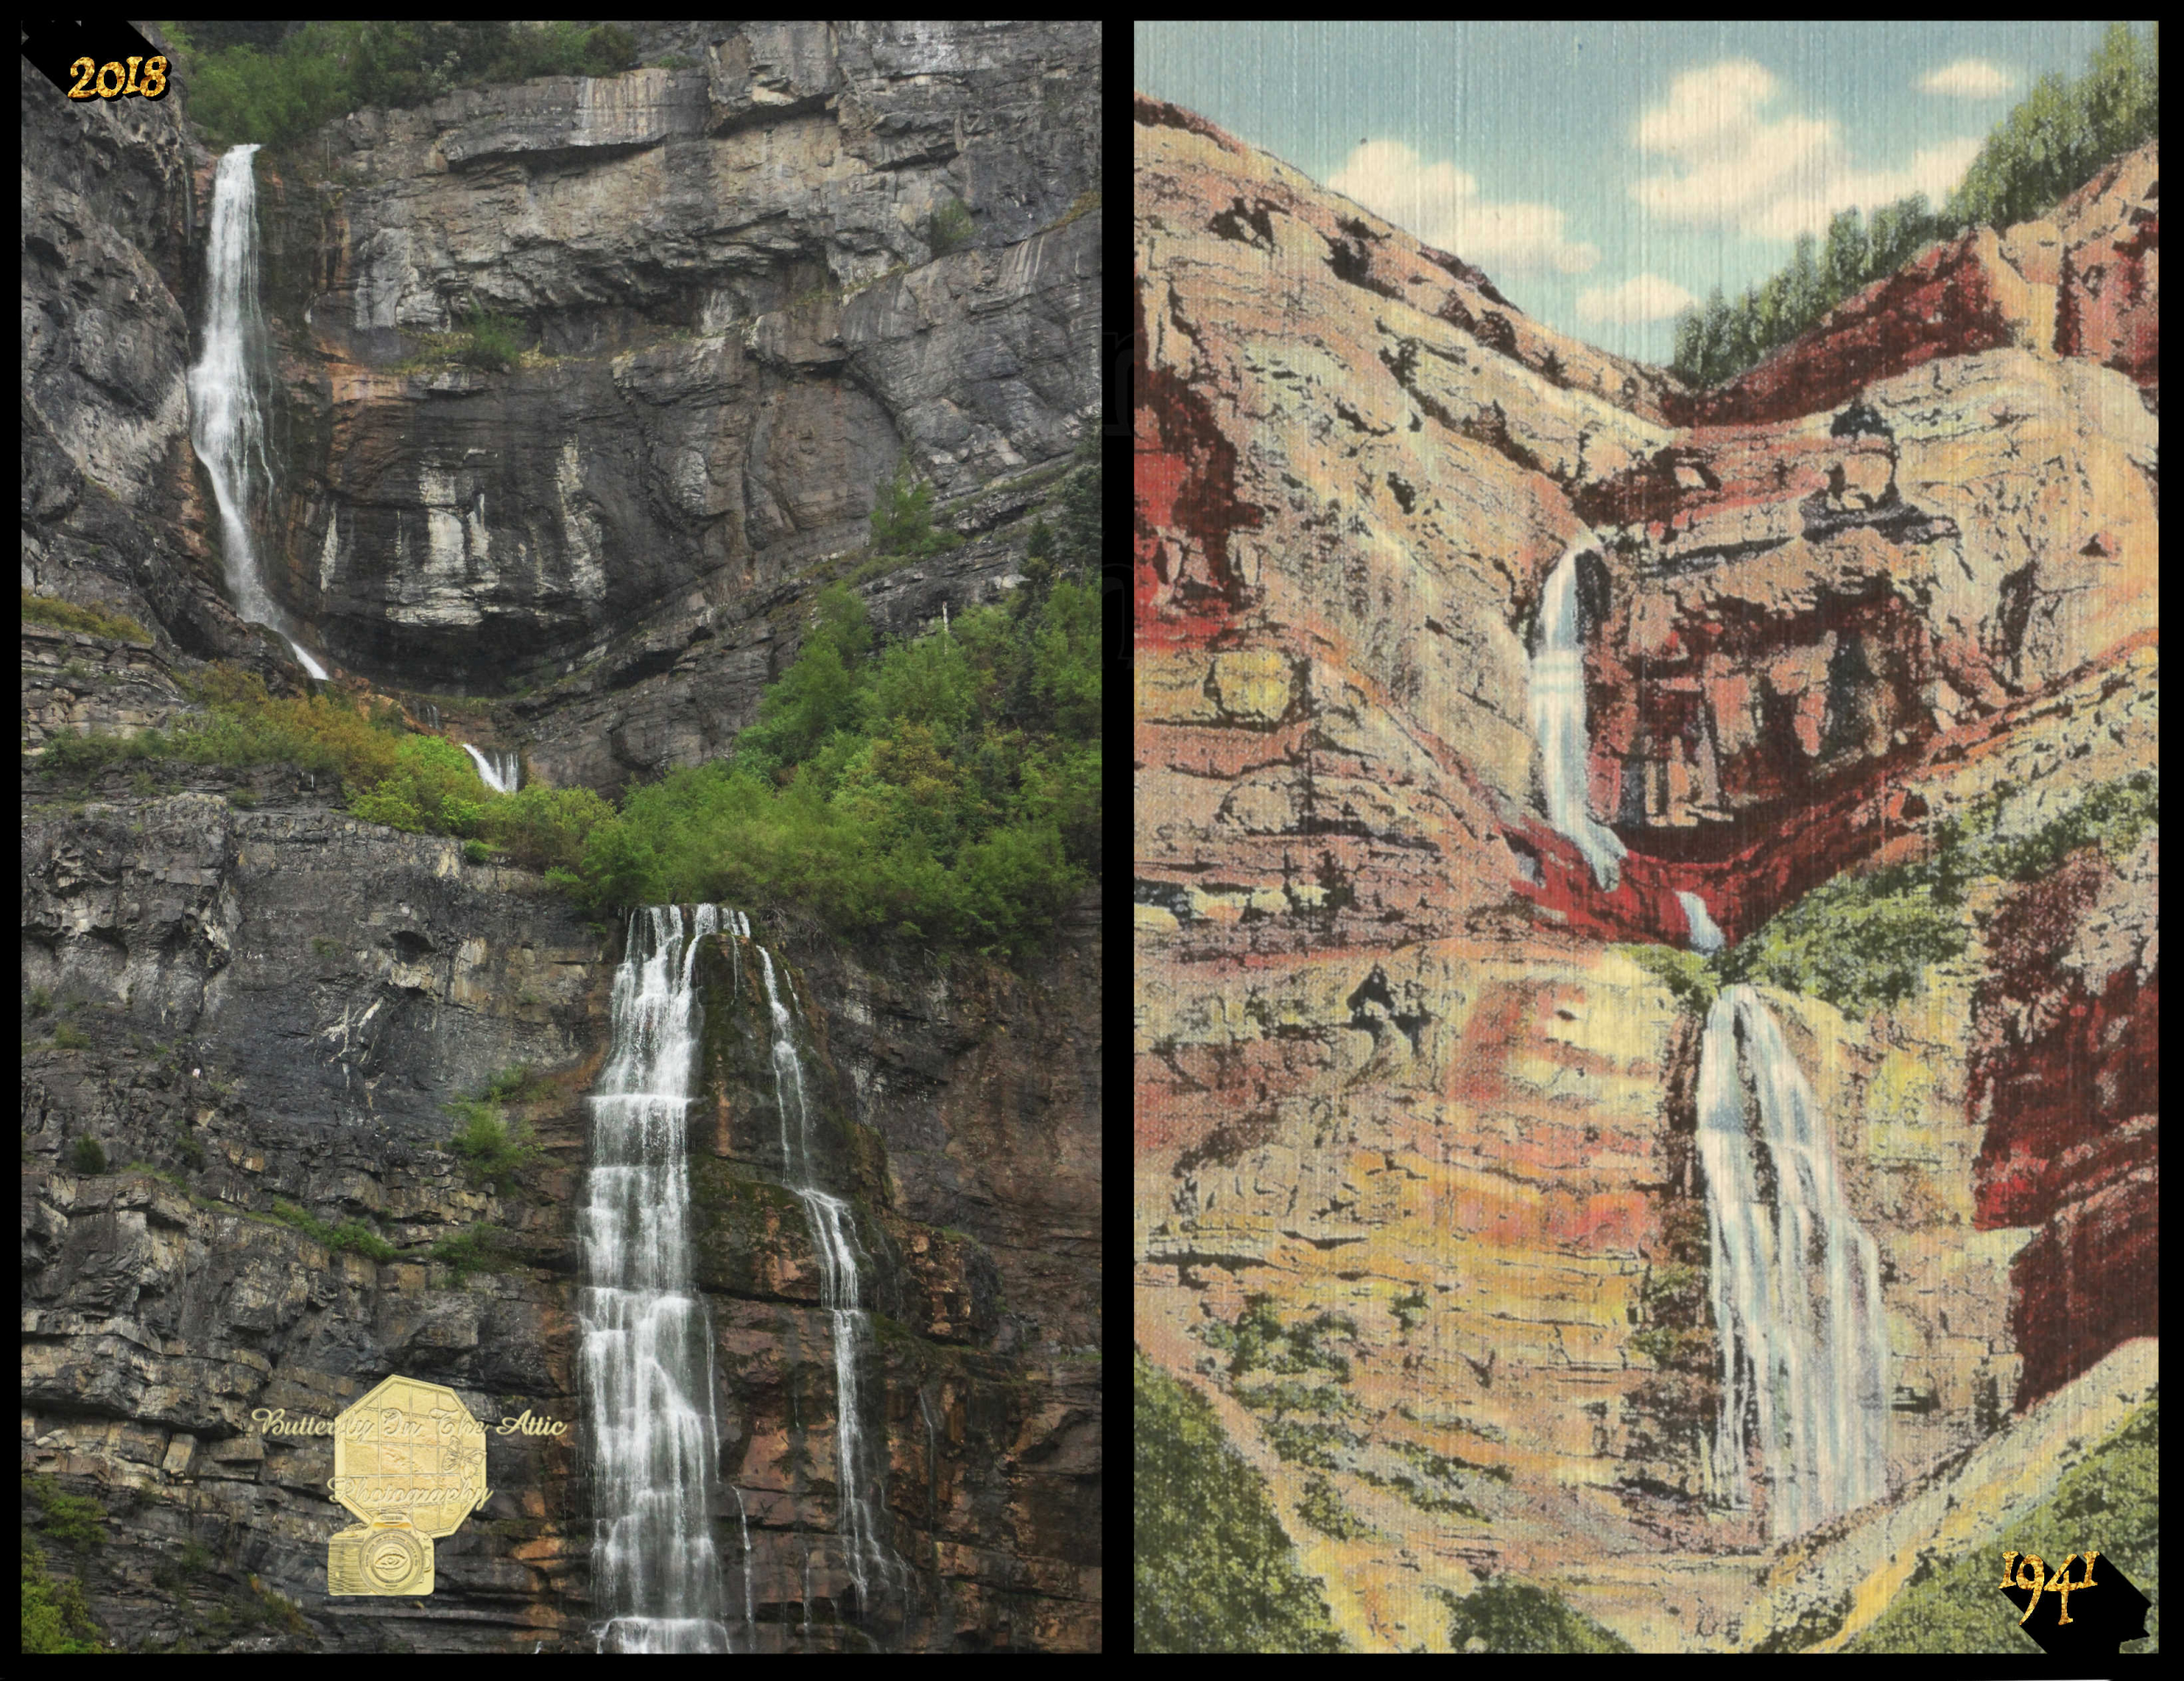 A Fun Look at Bridal Veil Falls Provo Canyon Utah Now '18 vs Then '41, SET OF 6